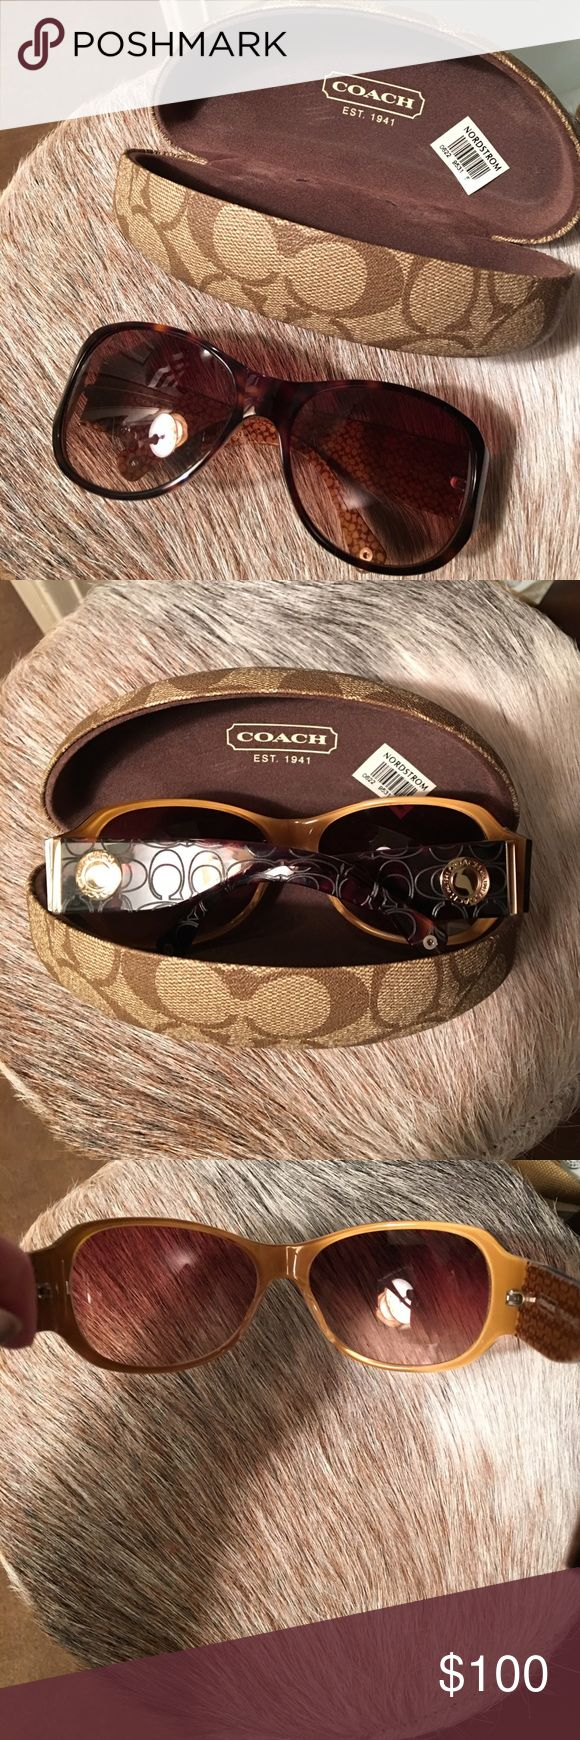 meilleures id eacute es agrave propos de coach carter sur coach sunglasses 128526 coach tortoise color sunglasses nwt from nordstrom beautiful sunglasses great quality